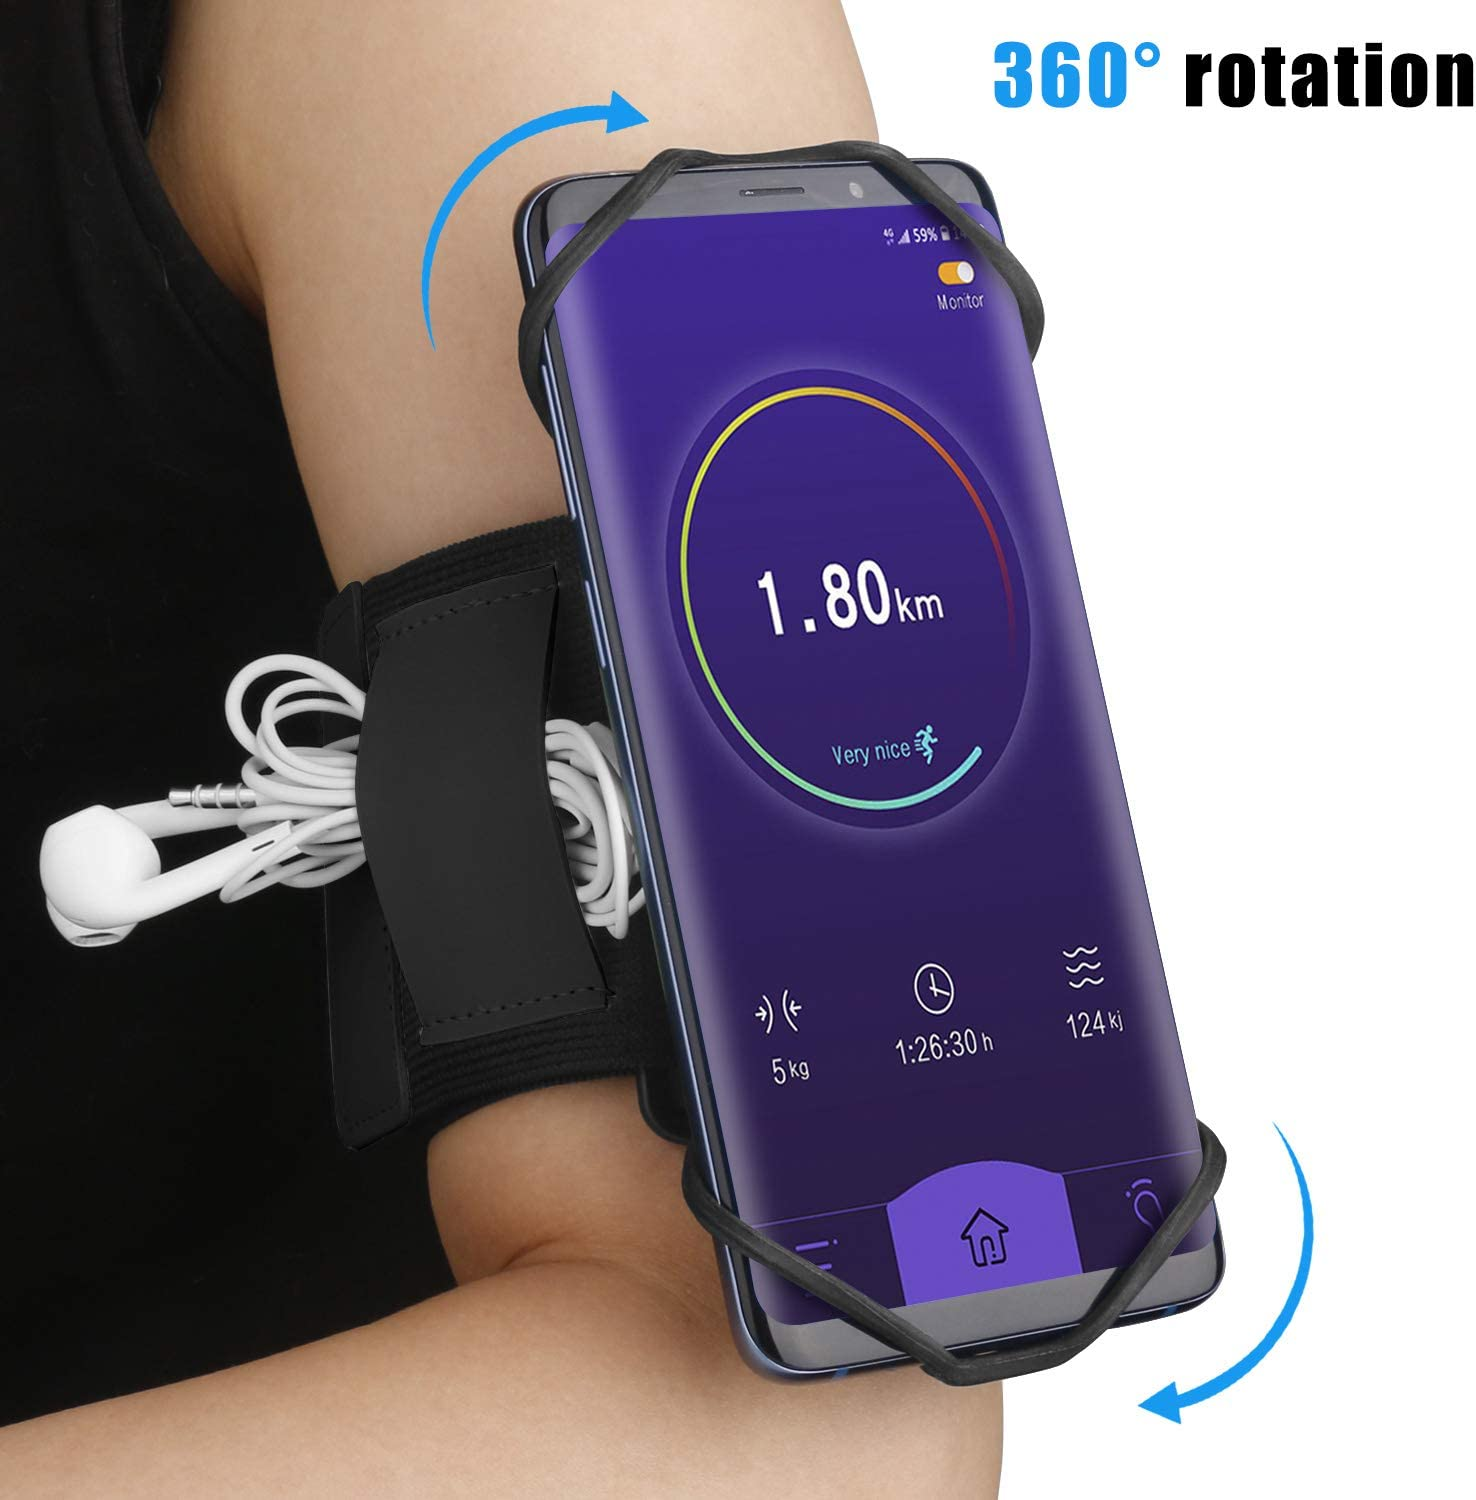 Tsuinz Cellphone Holder Running Wristband Armband Fit for iPhone 11 Pro Max Galaxy S20 Ultra Note 10 Pro Note 10+ Galaxy S10+ LG, 360° Rotatable Elastic Armband for Gym Fitness